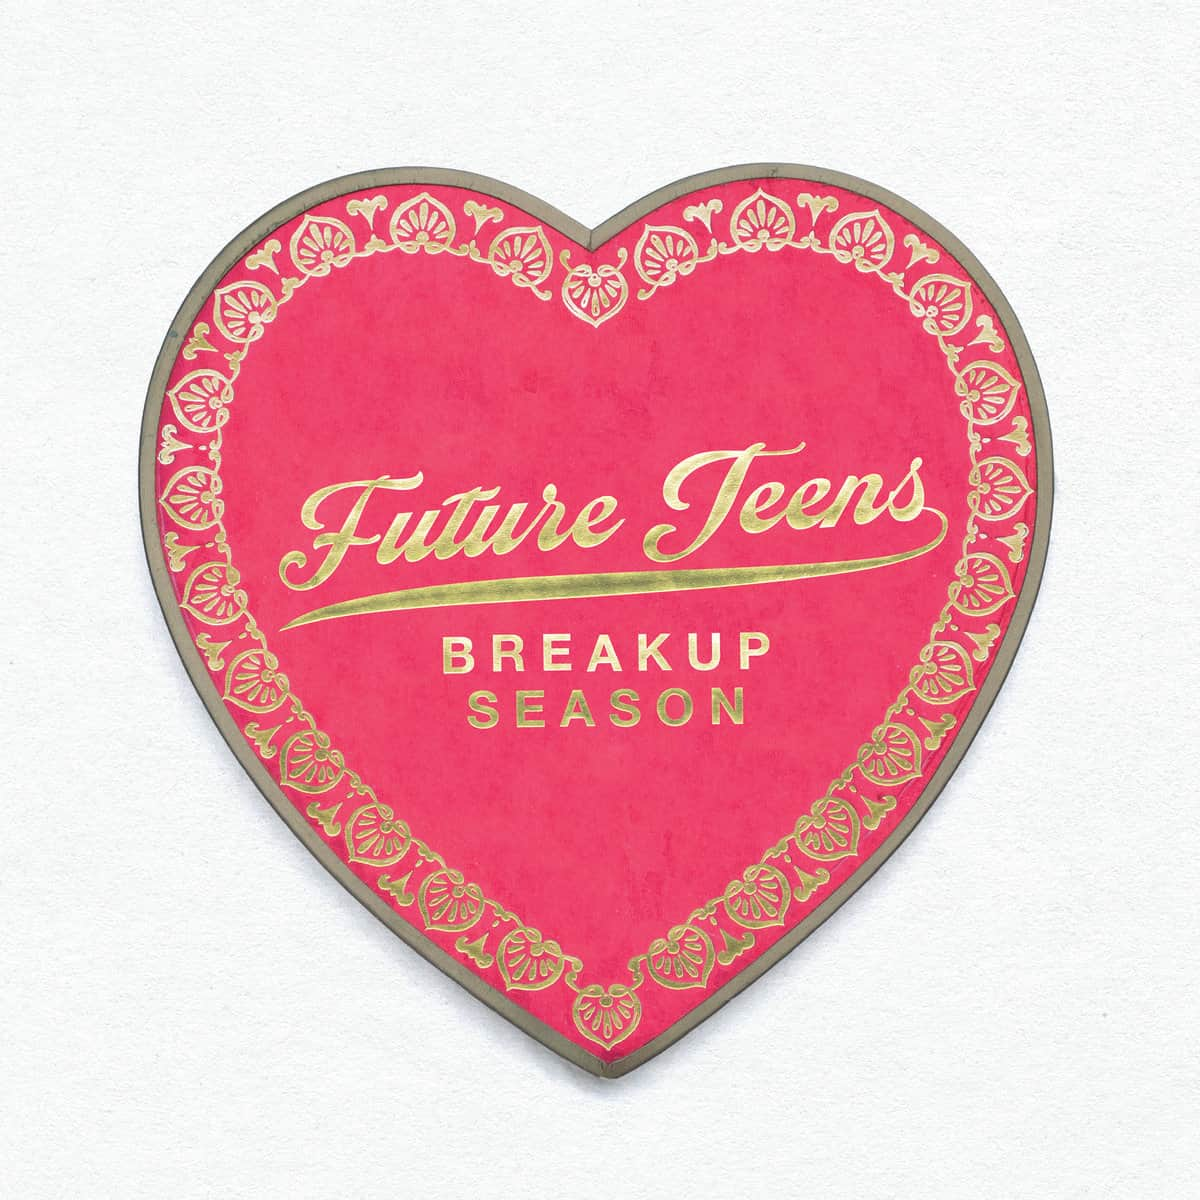 Breakup Season - Future Teens